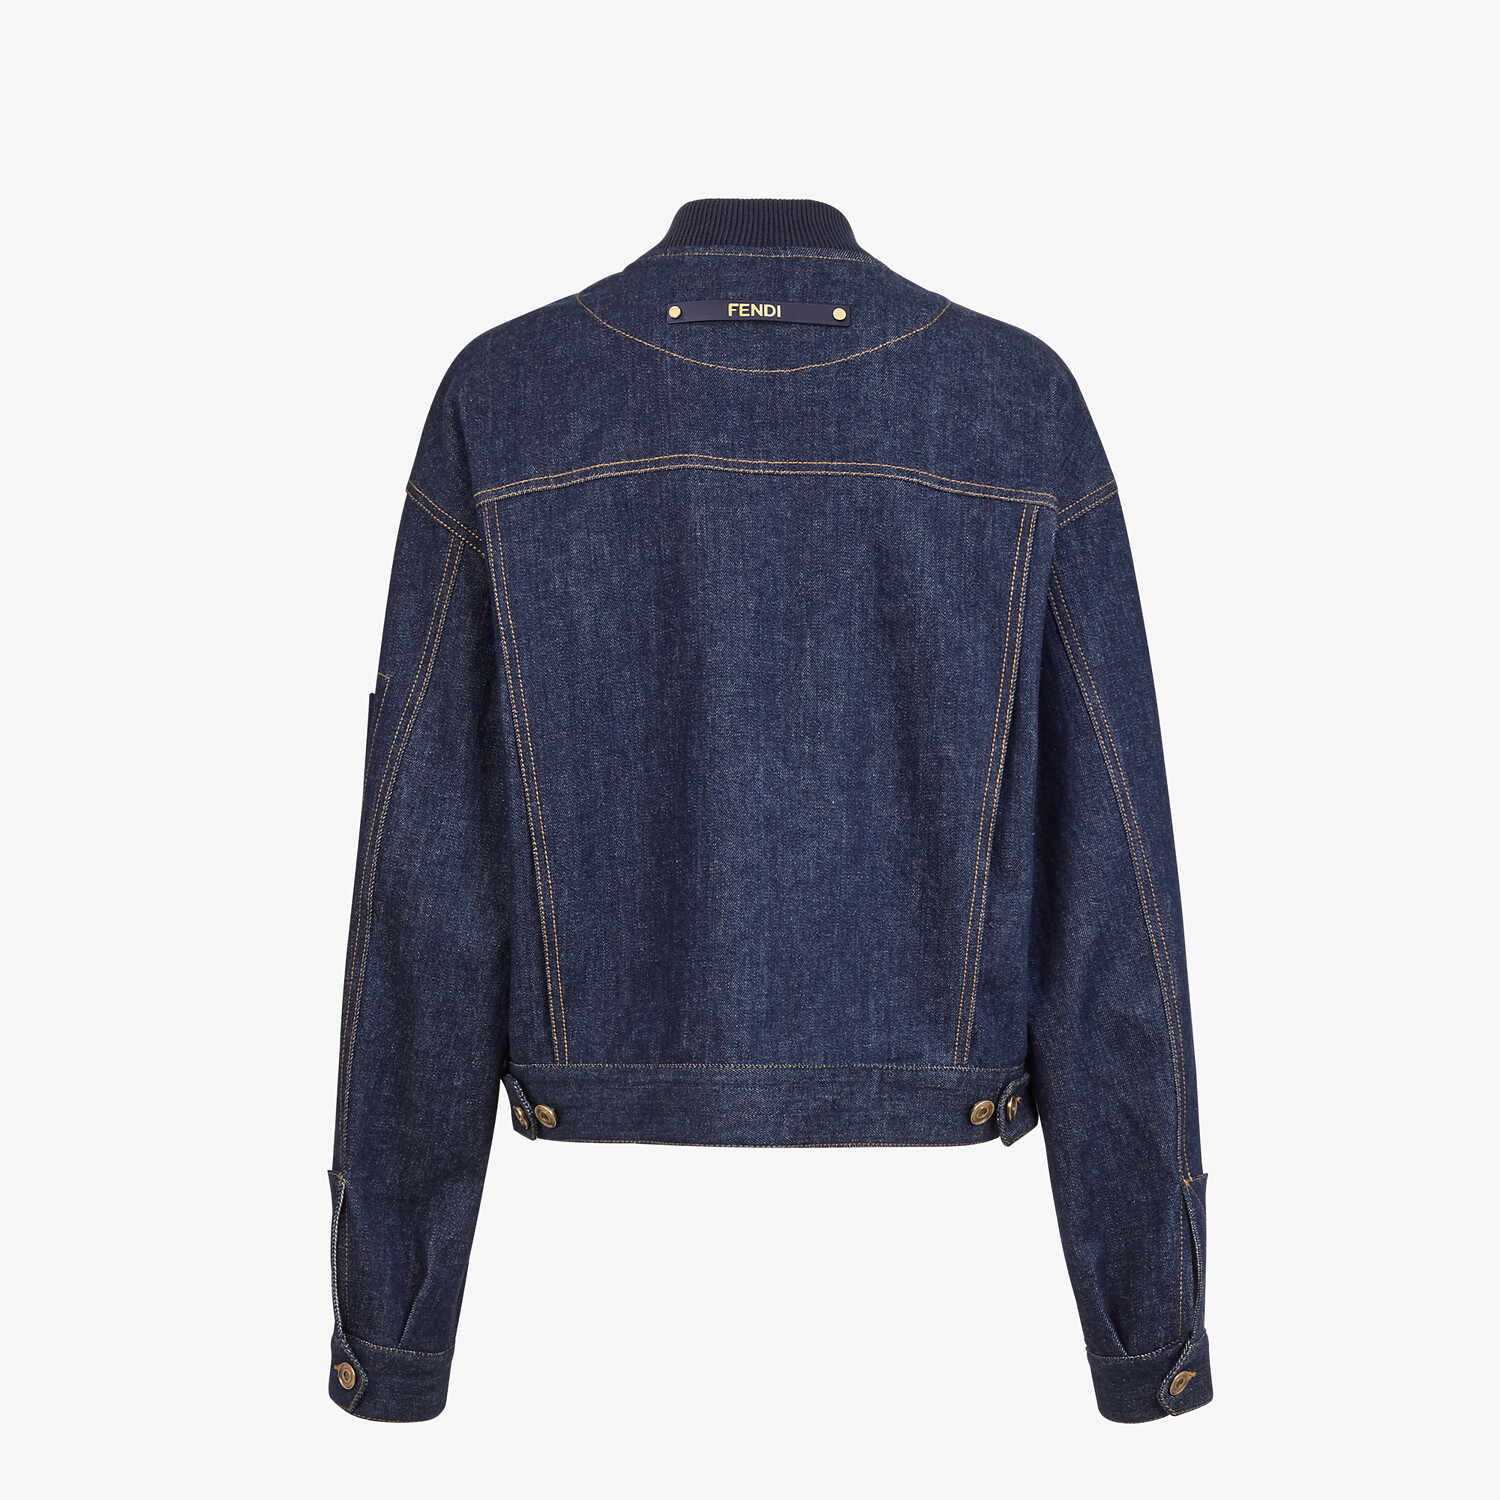 FENDI JACKET - Blue denim bomber jacket - view 2 detail